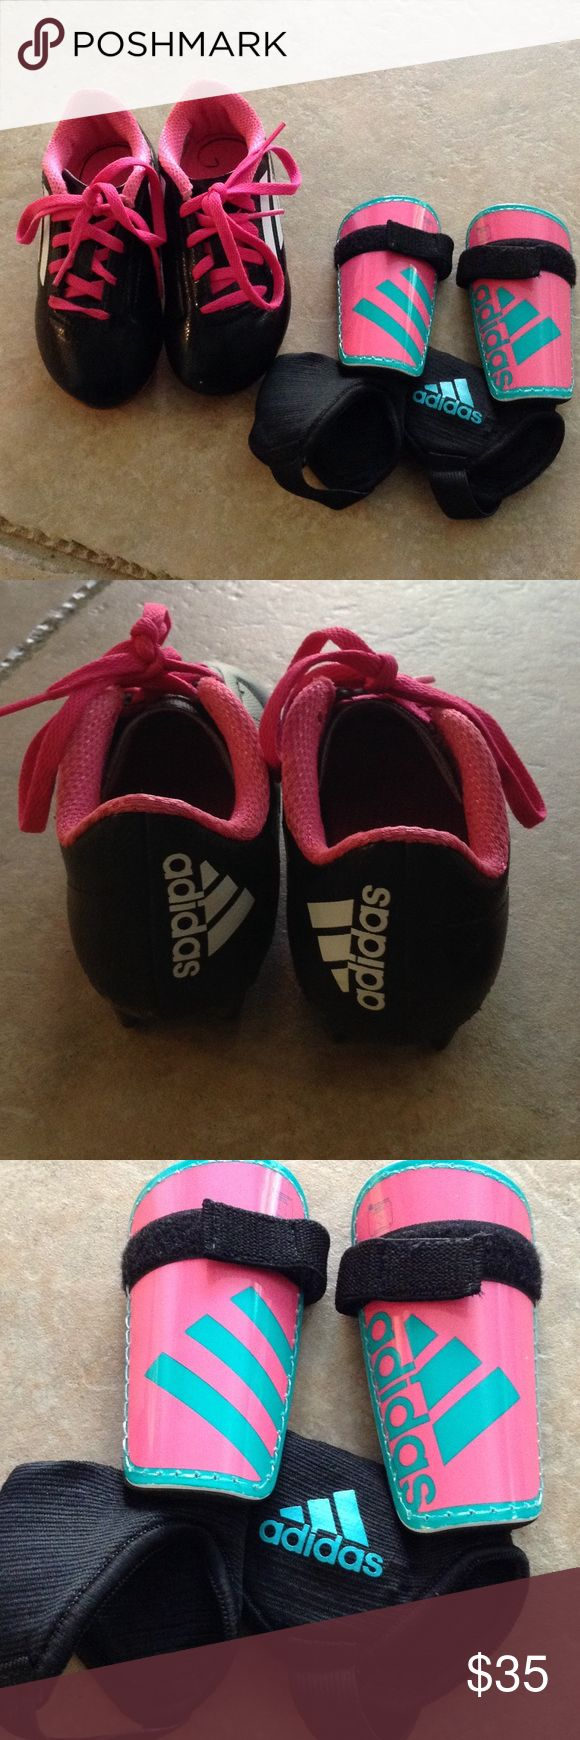 Little girls soccer cleats and shin guards ADIDAS Near perfect condition. Worn one season. Soccer cleats are a toddler size 10 and the cleats are a toddler small Adidas Shoes Sneakers